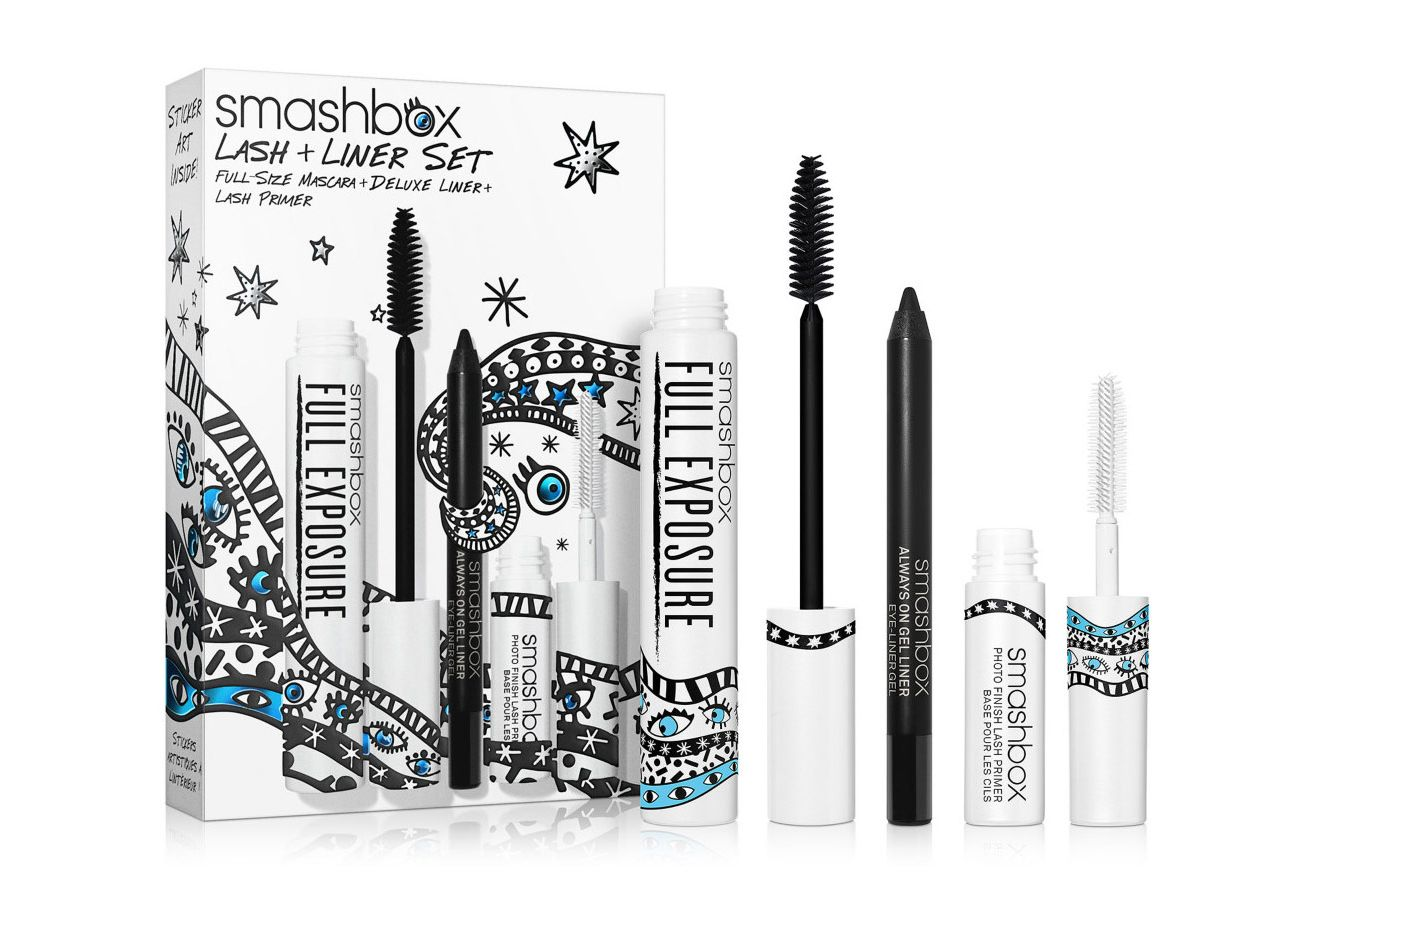 SMASHBOX Drawn In. Decked Out. Lash + Liner Set